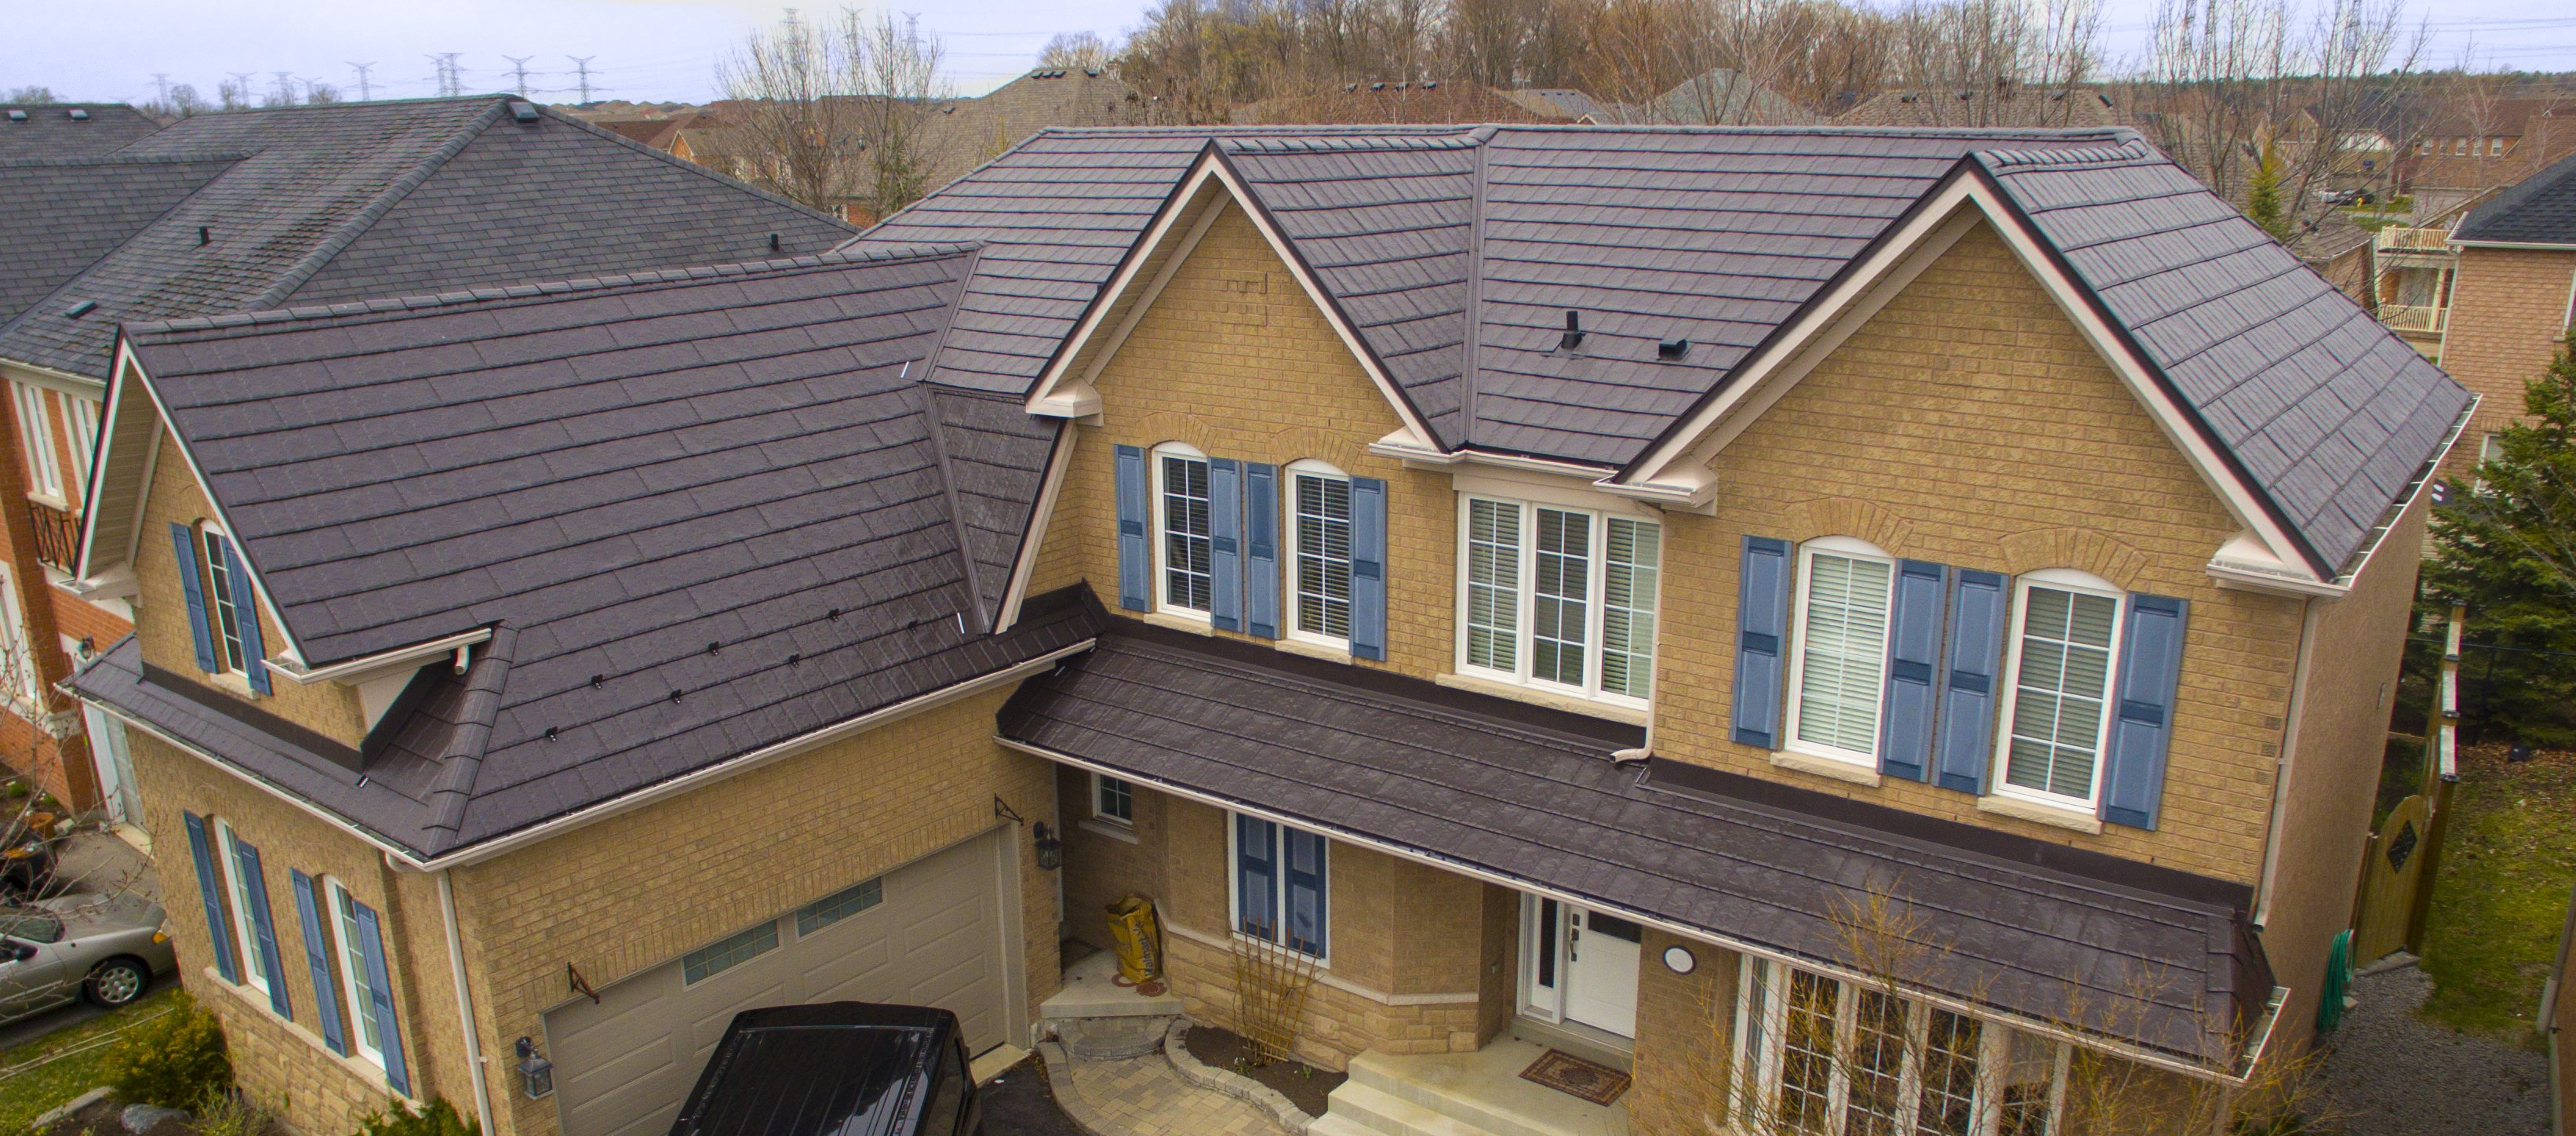 Roofing project by roofing contractors Addison